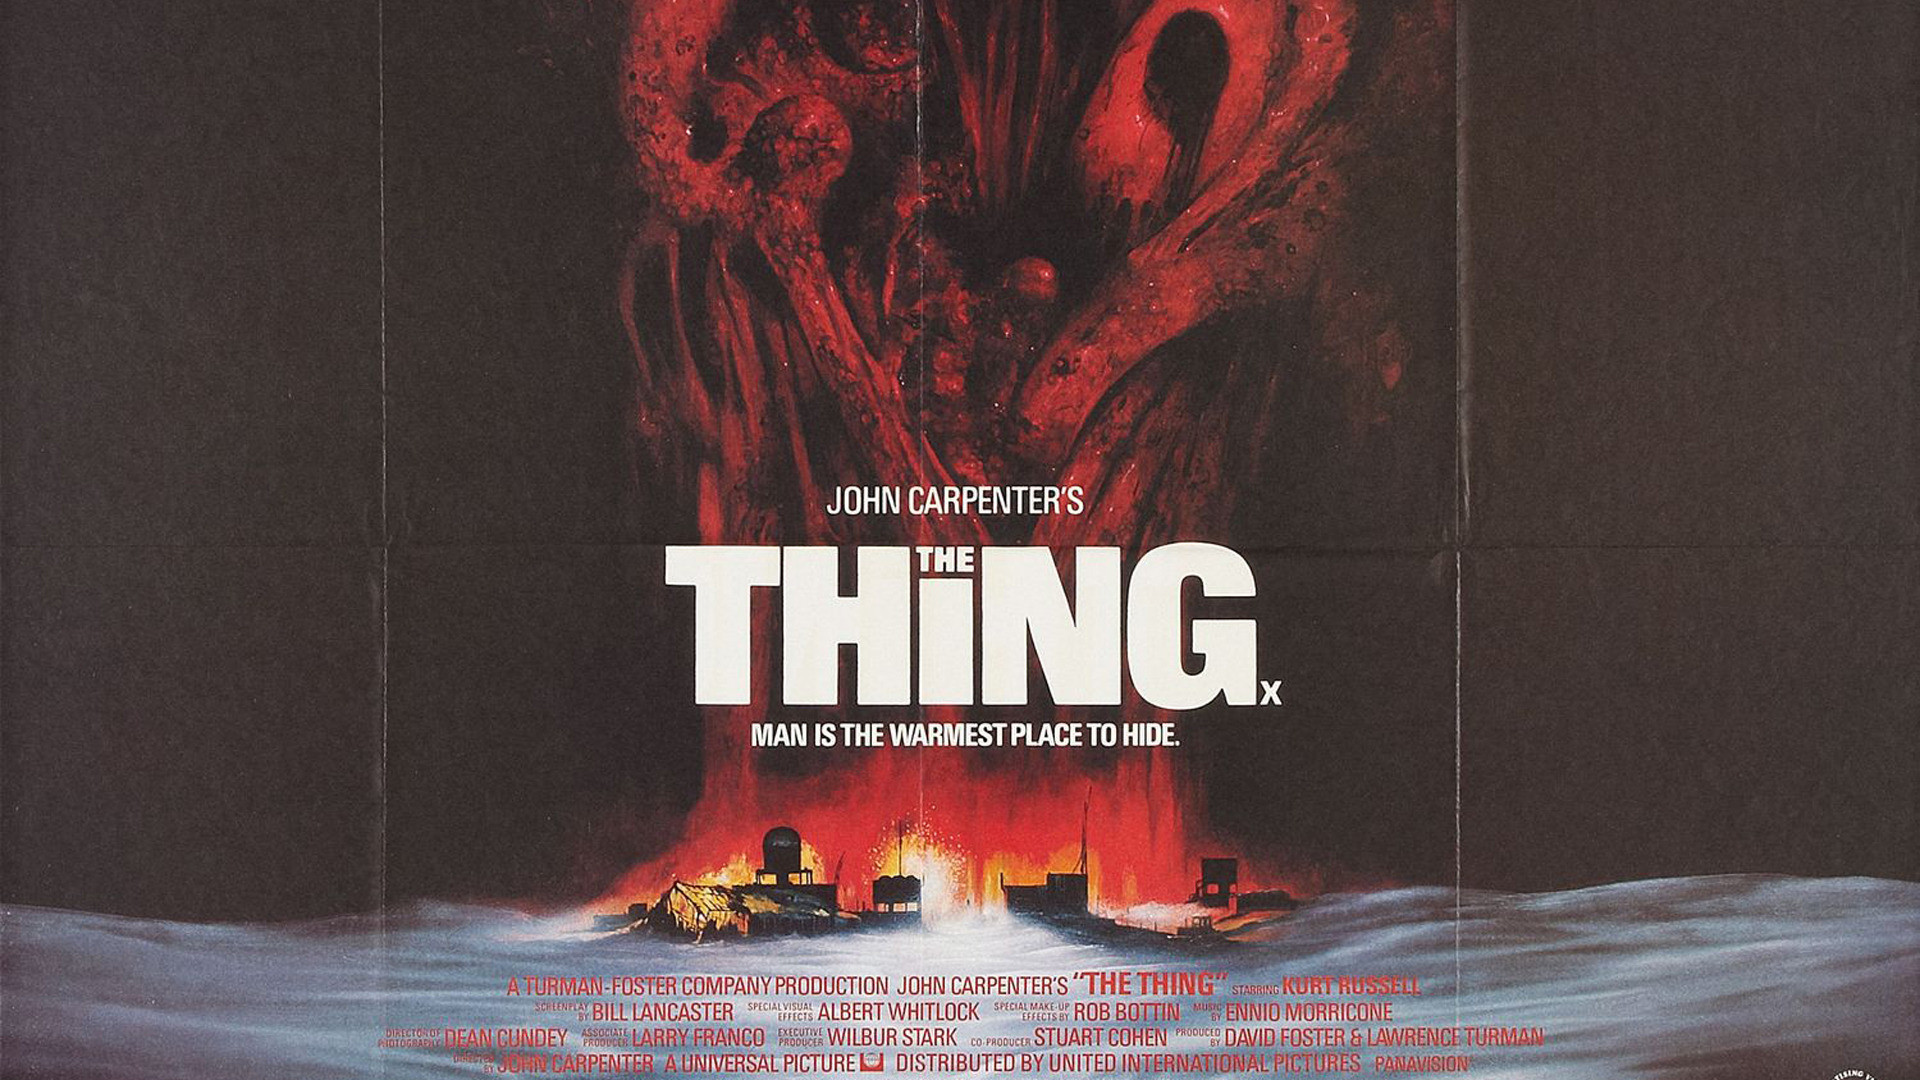 Res: 1920x1080, The Thing Movie Poster 12